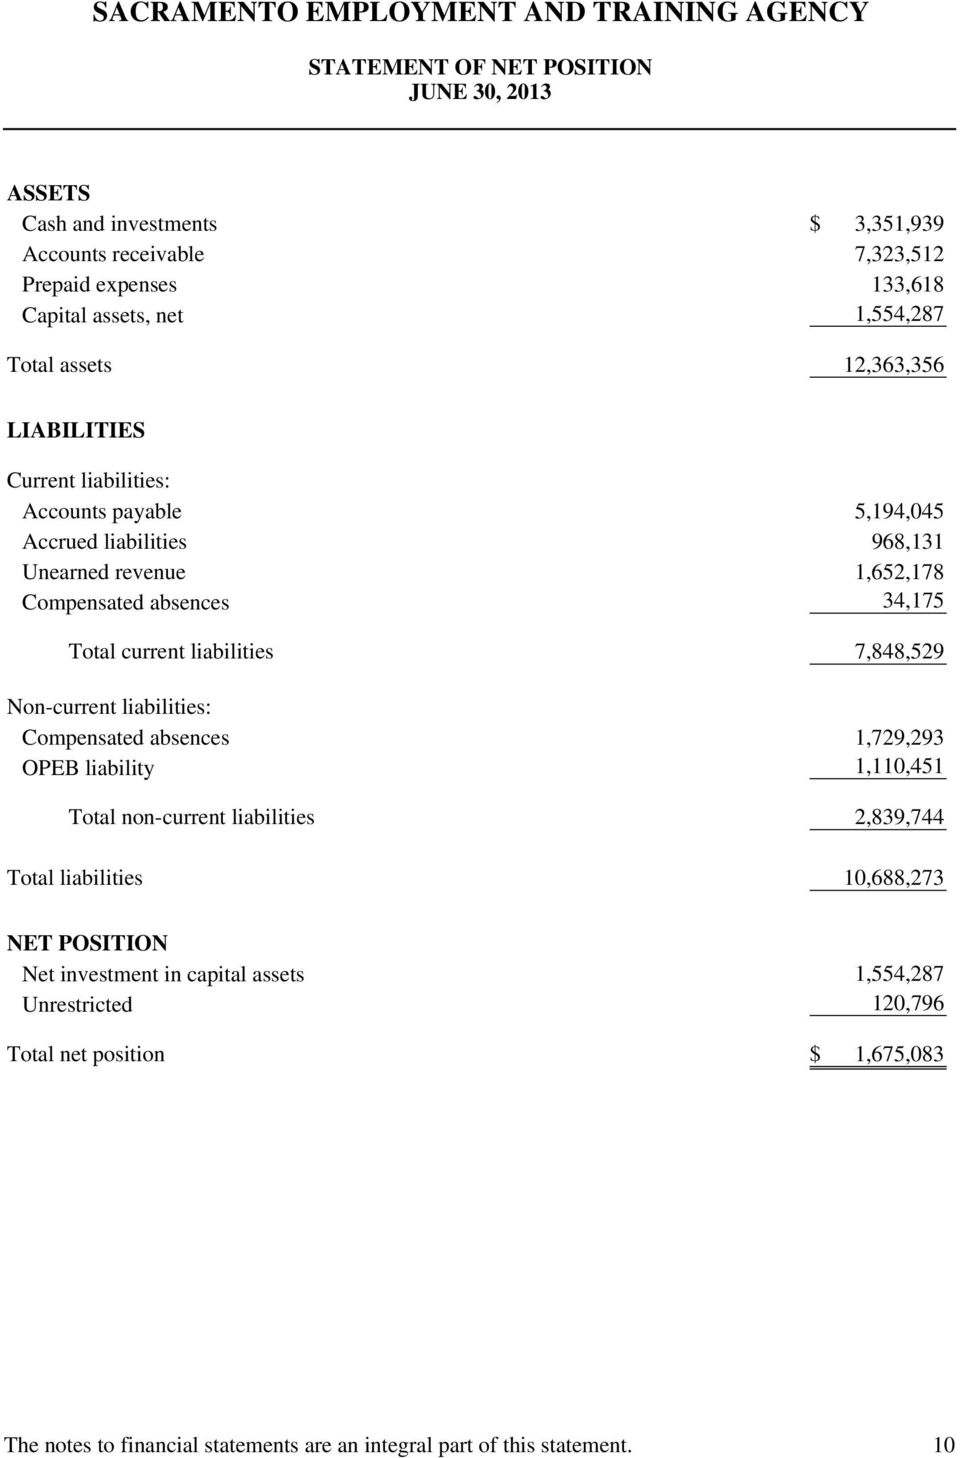 liabilities 7,848,529 Non-current liabilities: Compensated absences 1,729,293 OPEB liability 1,110,451 Total non-current liabilities 2,839,744 Total liabilities 10,688,273 NET